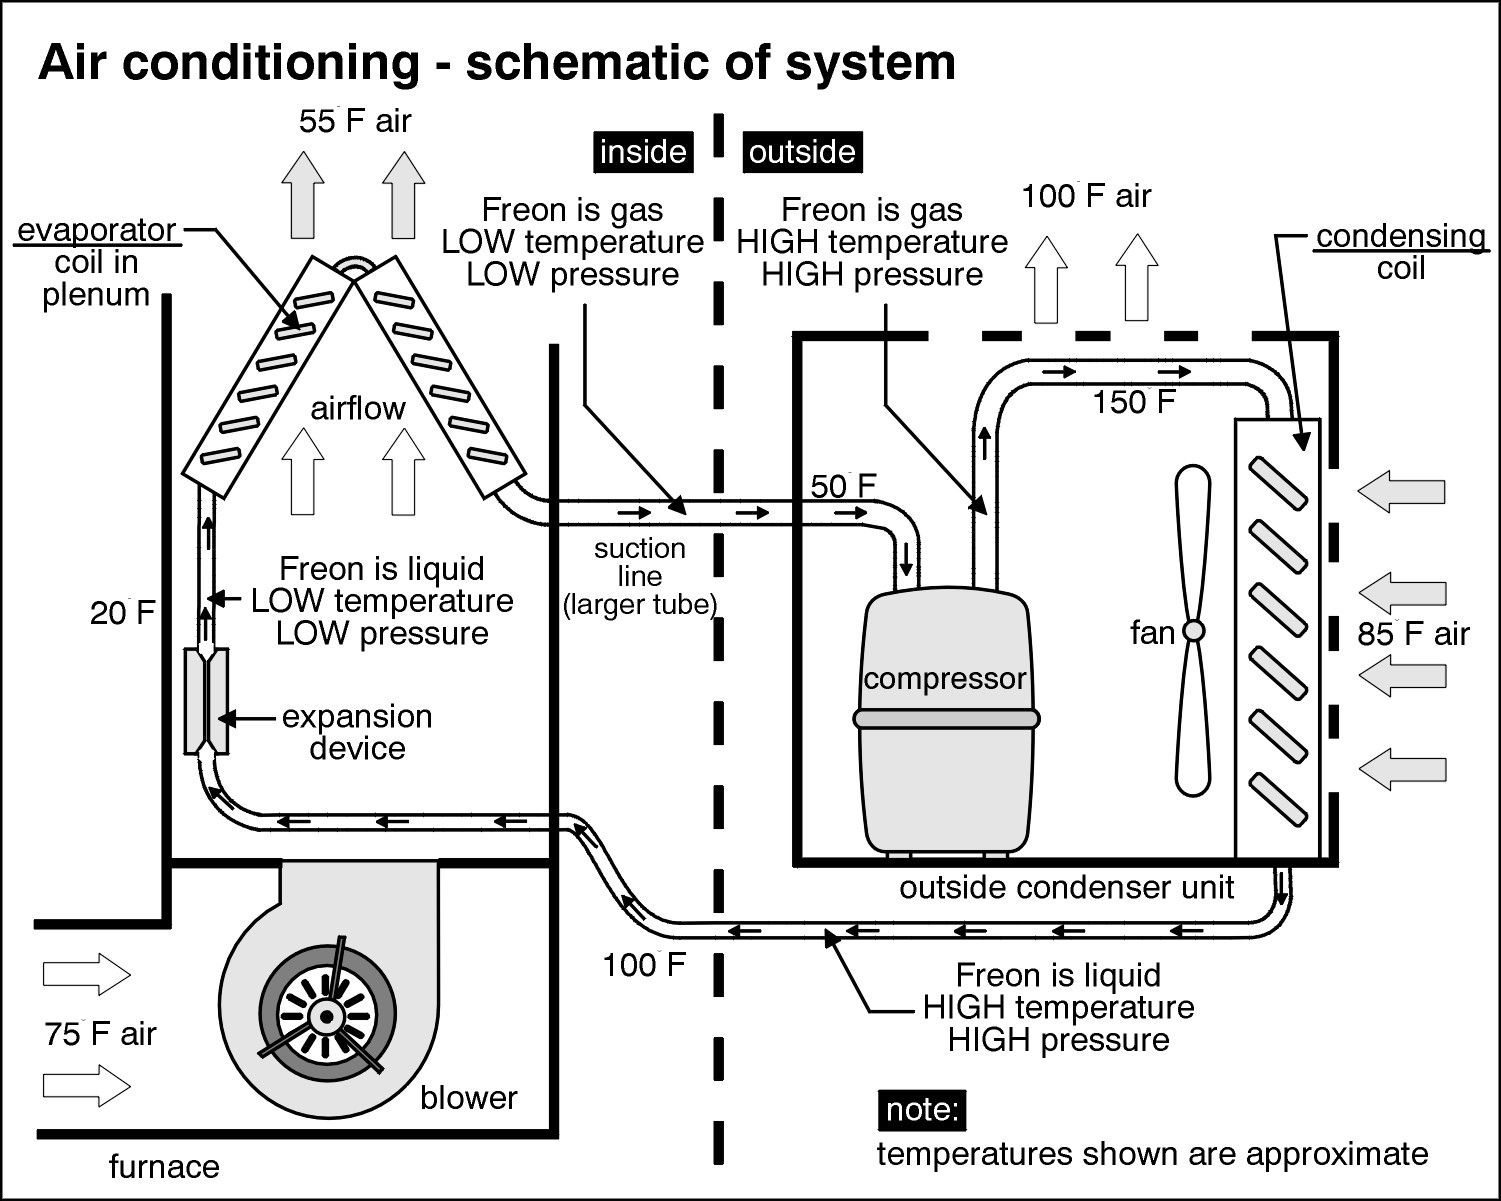 Central Air Conditioning System Diagram Before You Call A Ac Repair Man Visit My Blog For Some